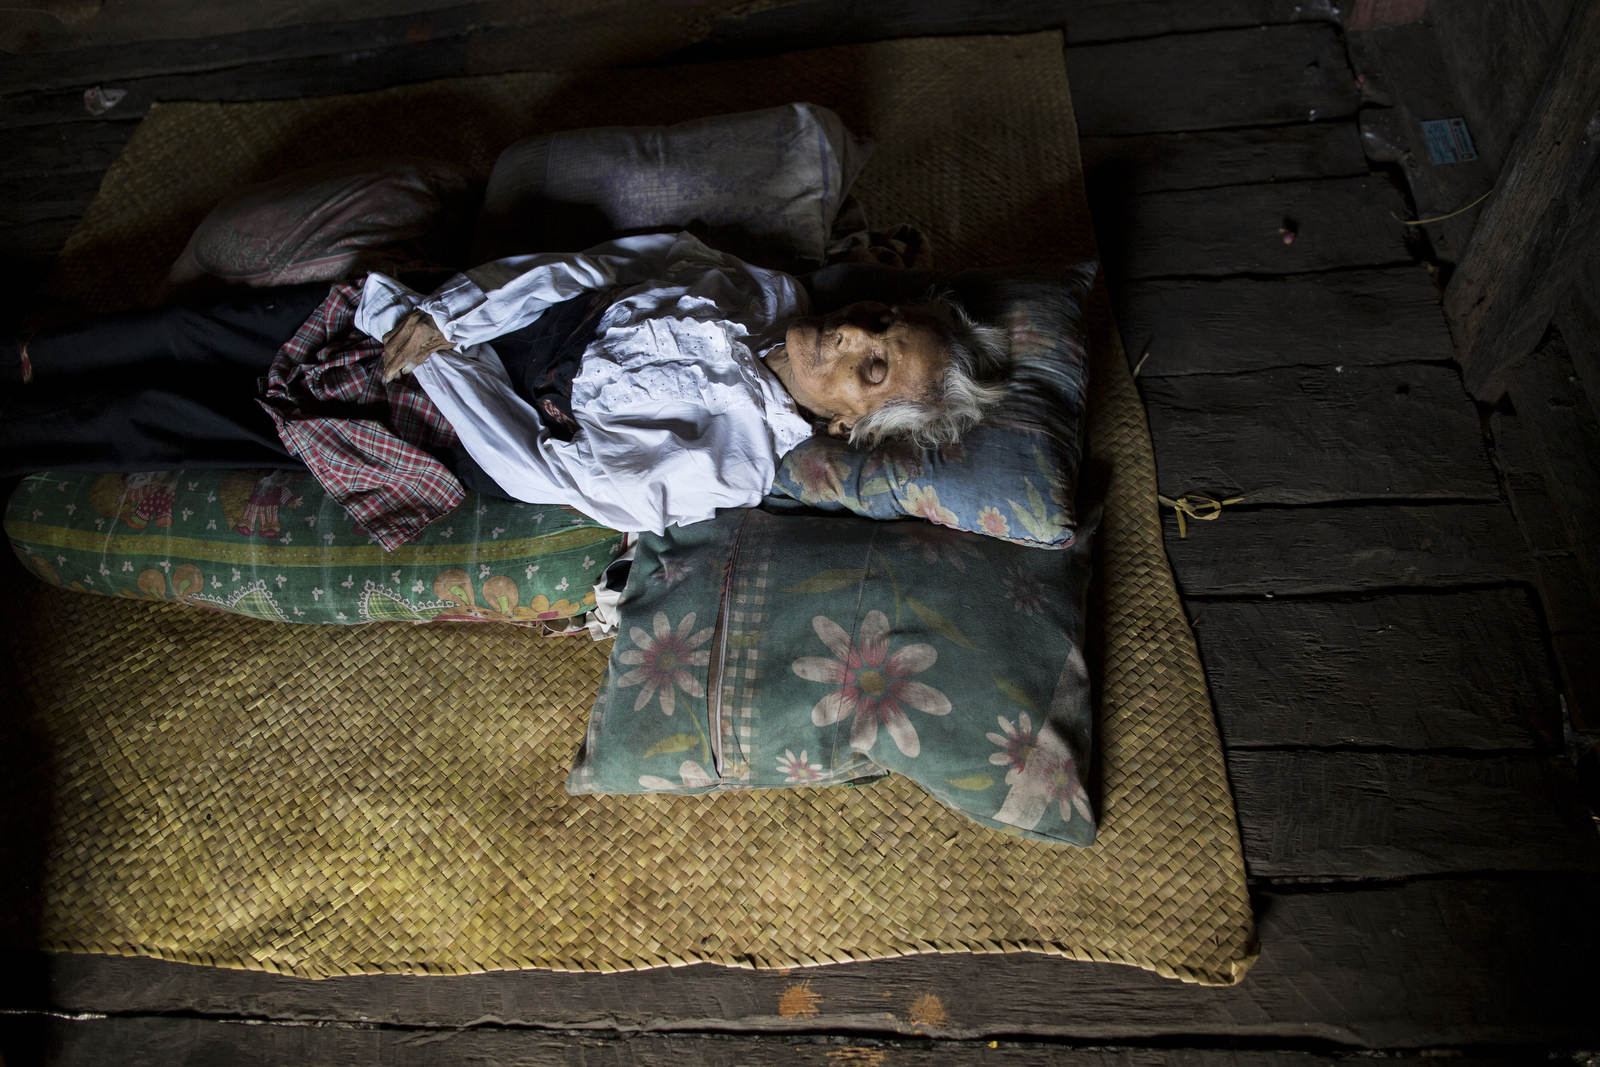 Nama Lawa Lati died at age 79 in Lumbu Wanga, a village on the remote island of Sumba in Eastern Indonesia. Her relatives put her in her nicest clothes and laid her body in the middle of the room for visitors to come and greet.